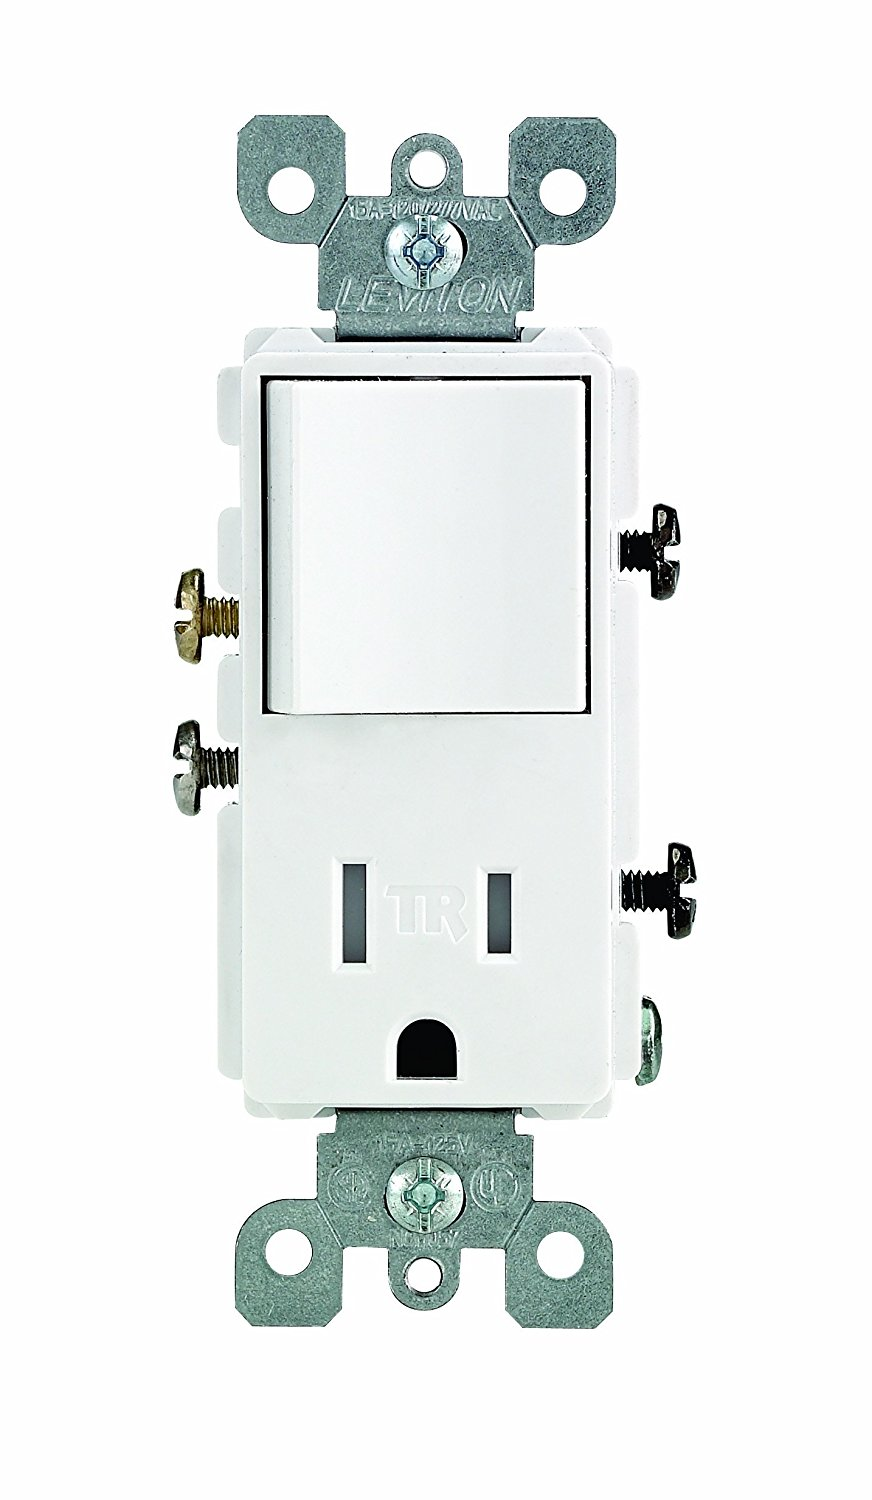 Leviton T5625-E Decora Combination Switch and Tamper-Resistant Receptacle Black